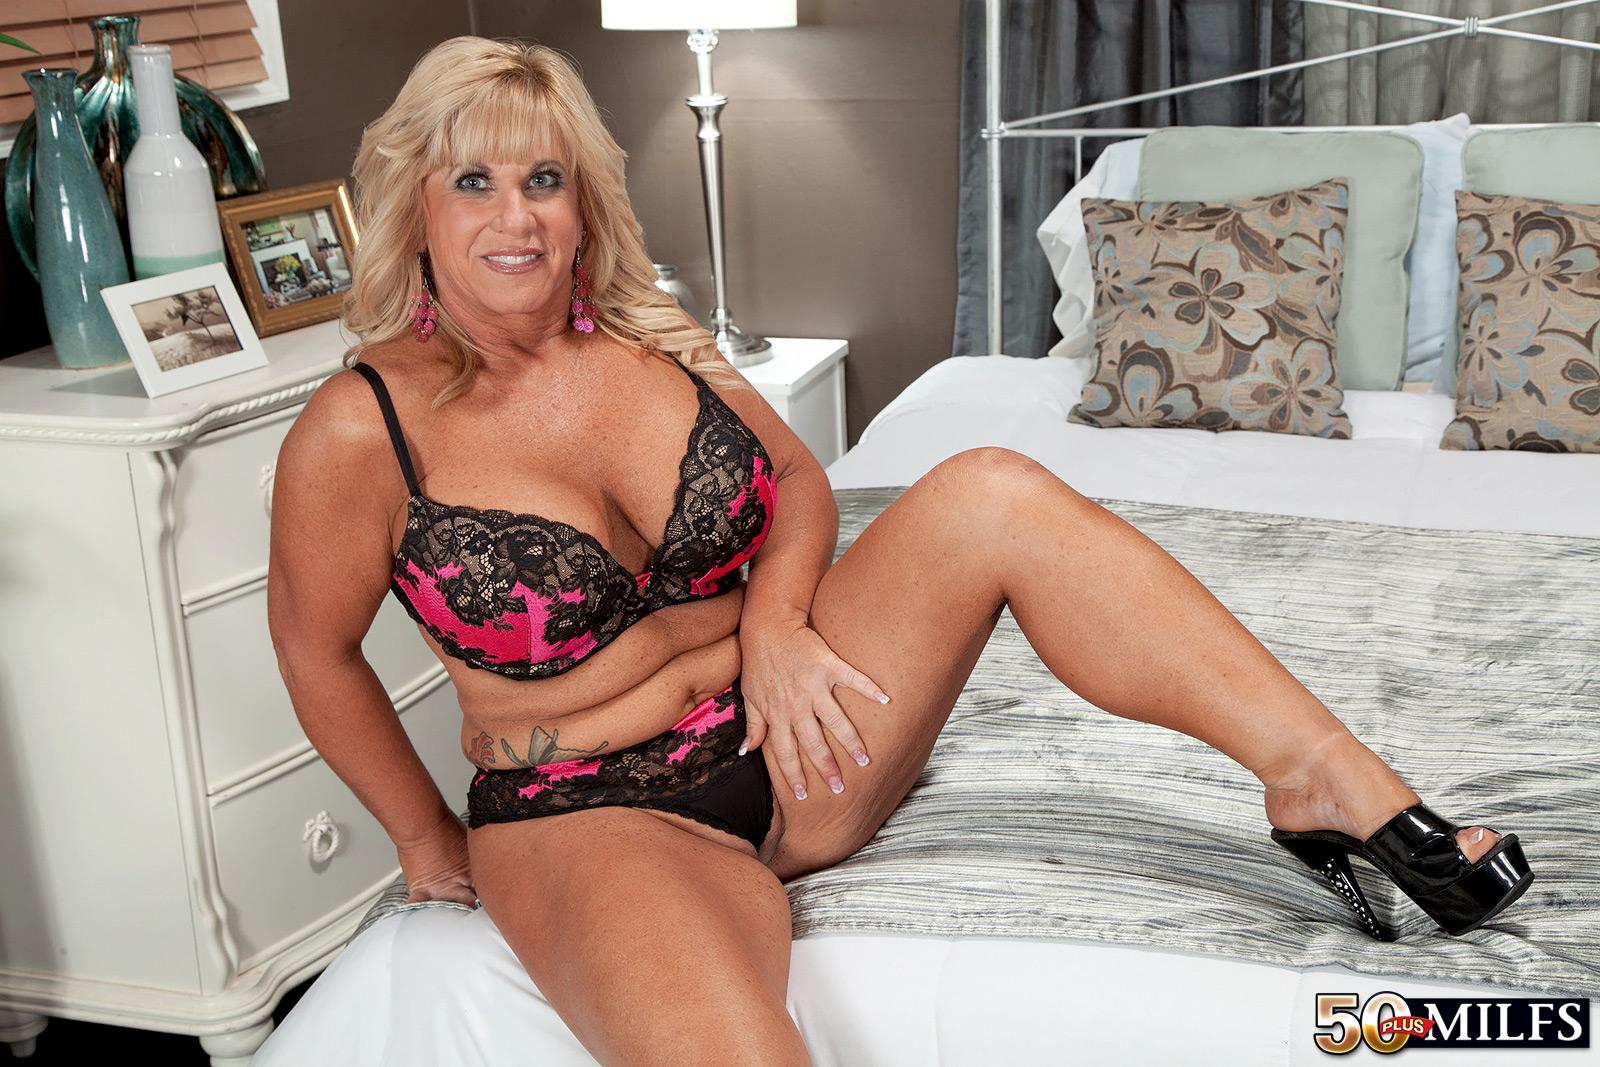 All Over 50 Nude Pics round over 50 yellow-haired milf zena rey revealing enormous